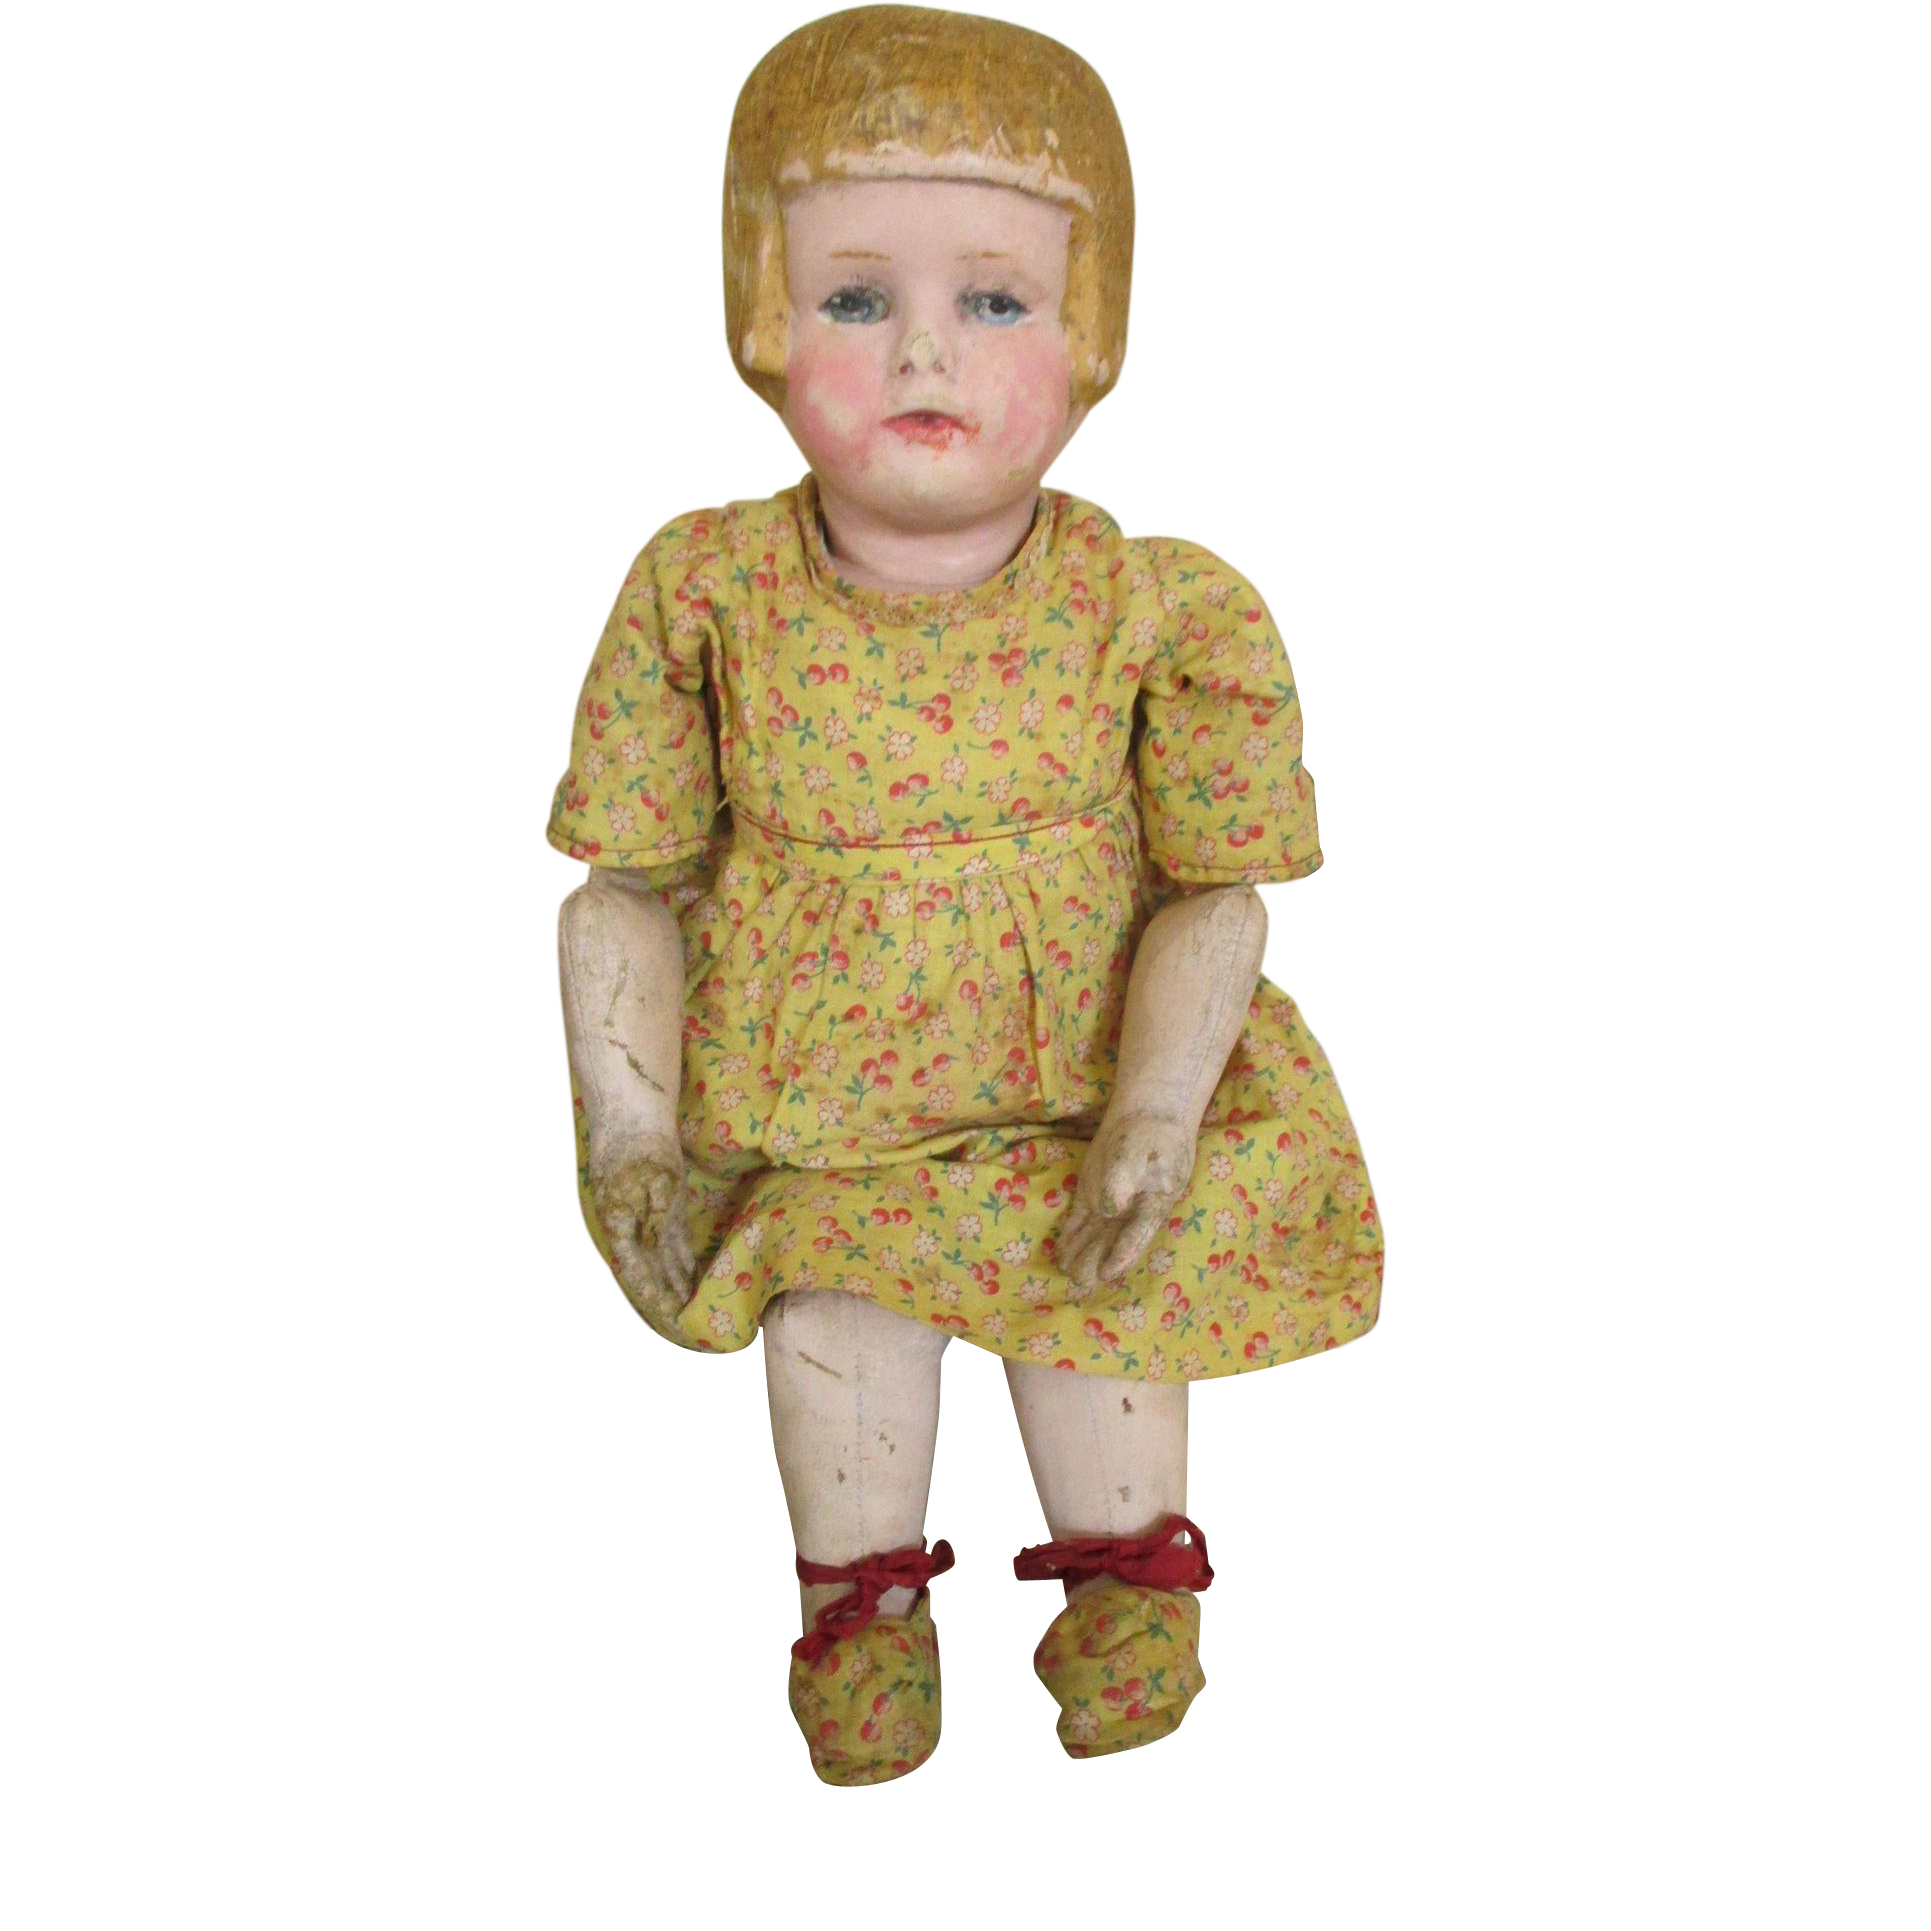 Antique Bobbed Hair Chase Doll in Original Outfit